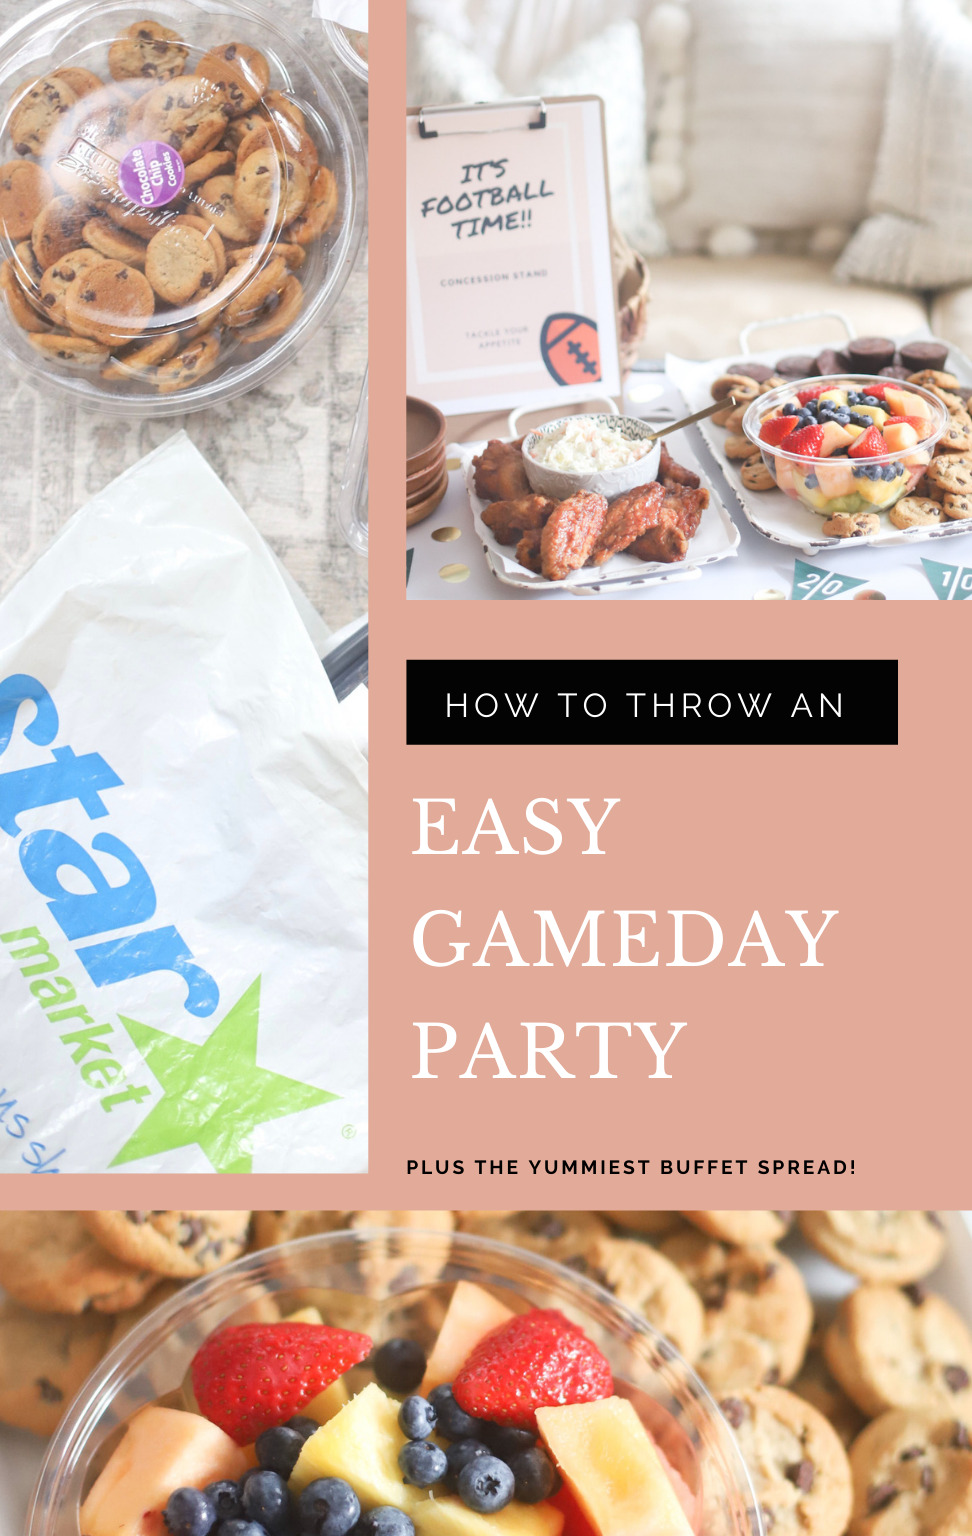 AD: It's football season! Celebrate by throwing an easy gameday party at home. Gather with family and watch the game with these simple BIG GAME party tips, football party decoration ideas, and the yummiest game day snacks – no cooking required – to keep your crew happy and well fed. #StarMarket